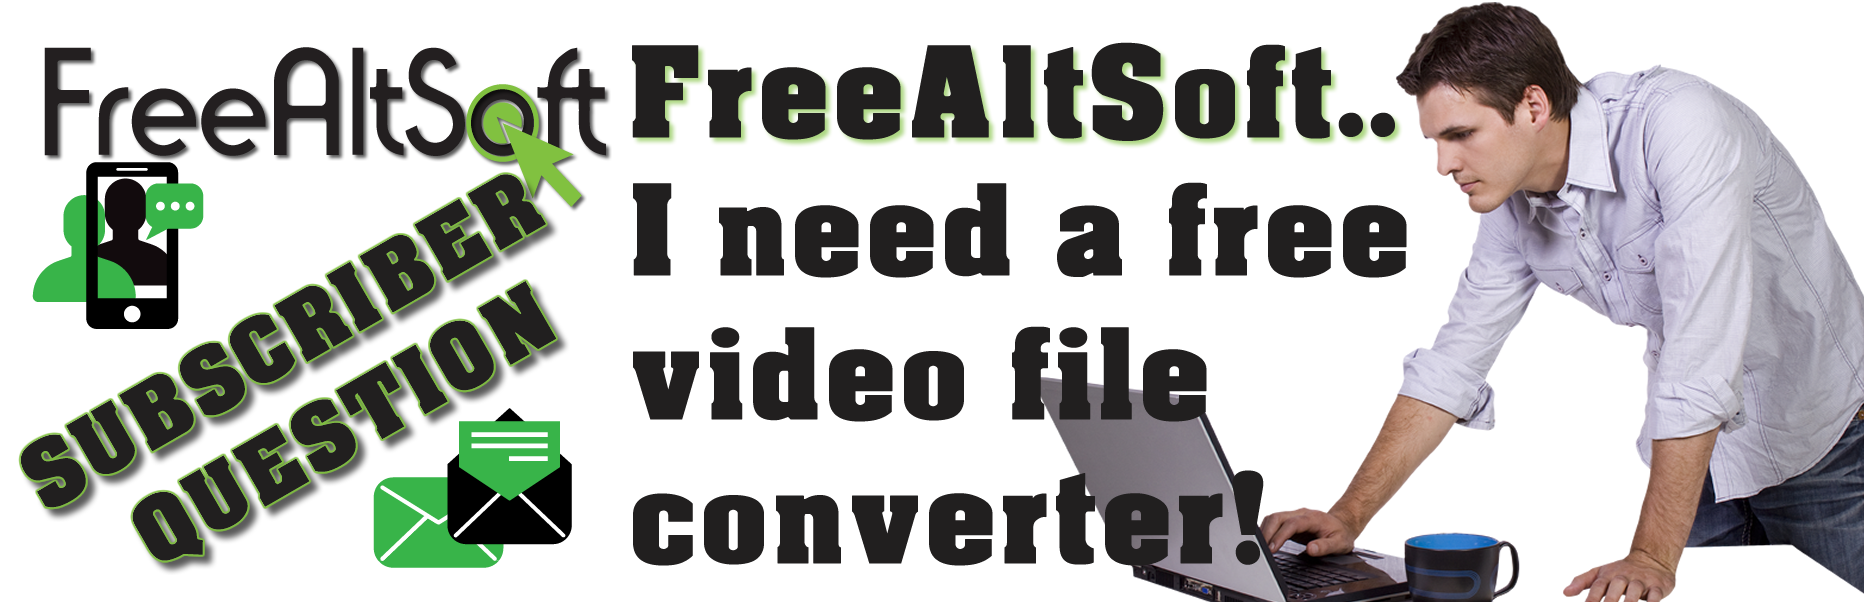 Subscriber Question: Free Video File Converter